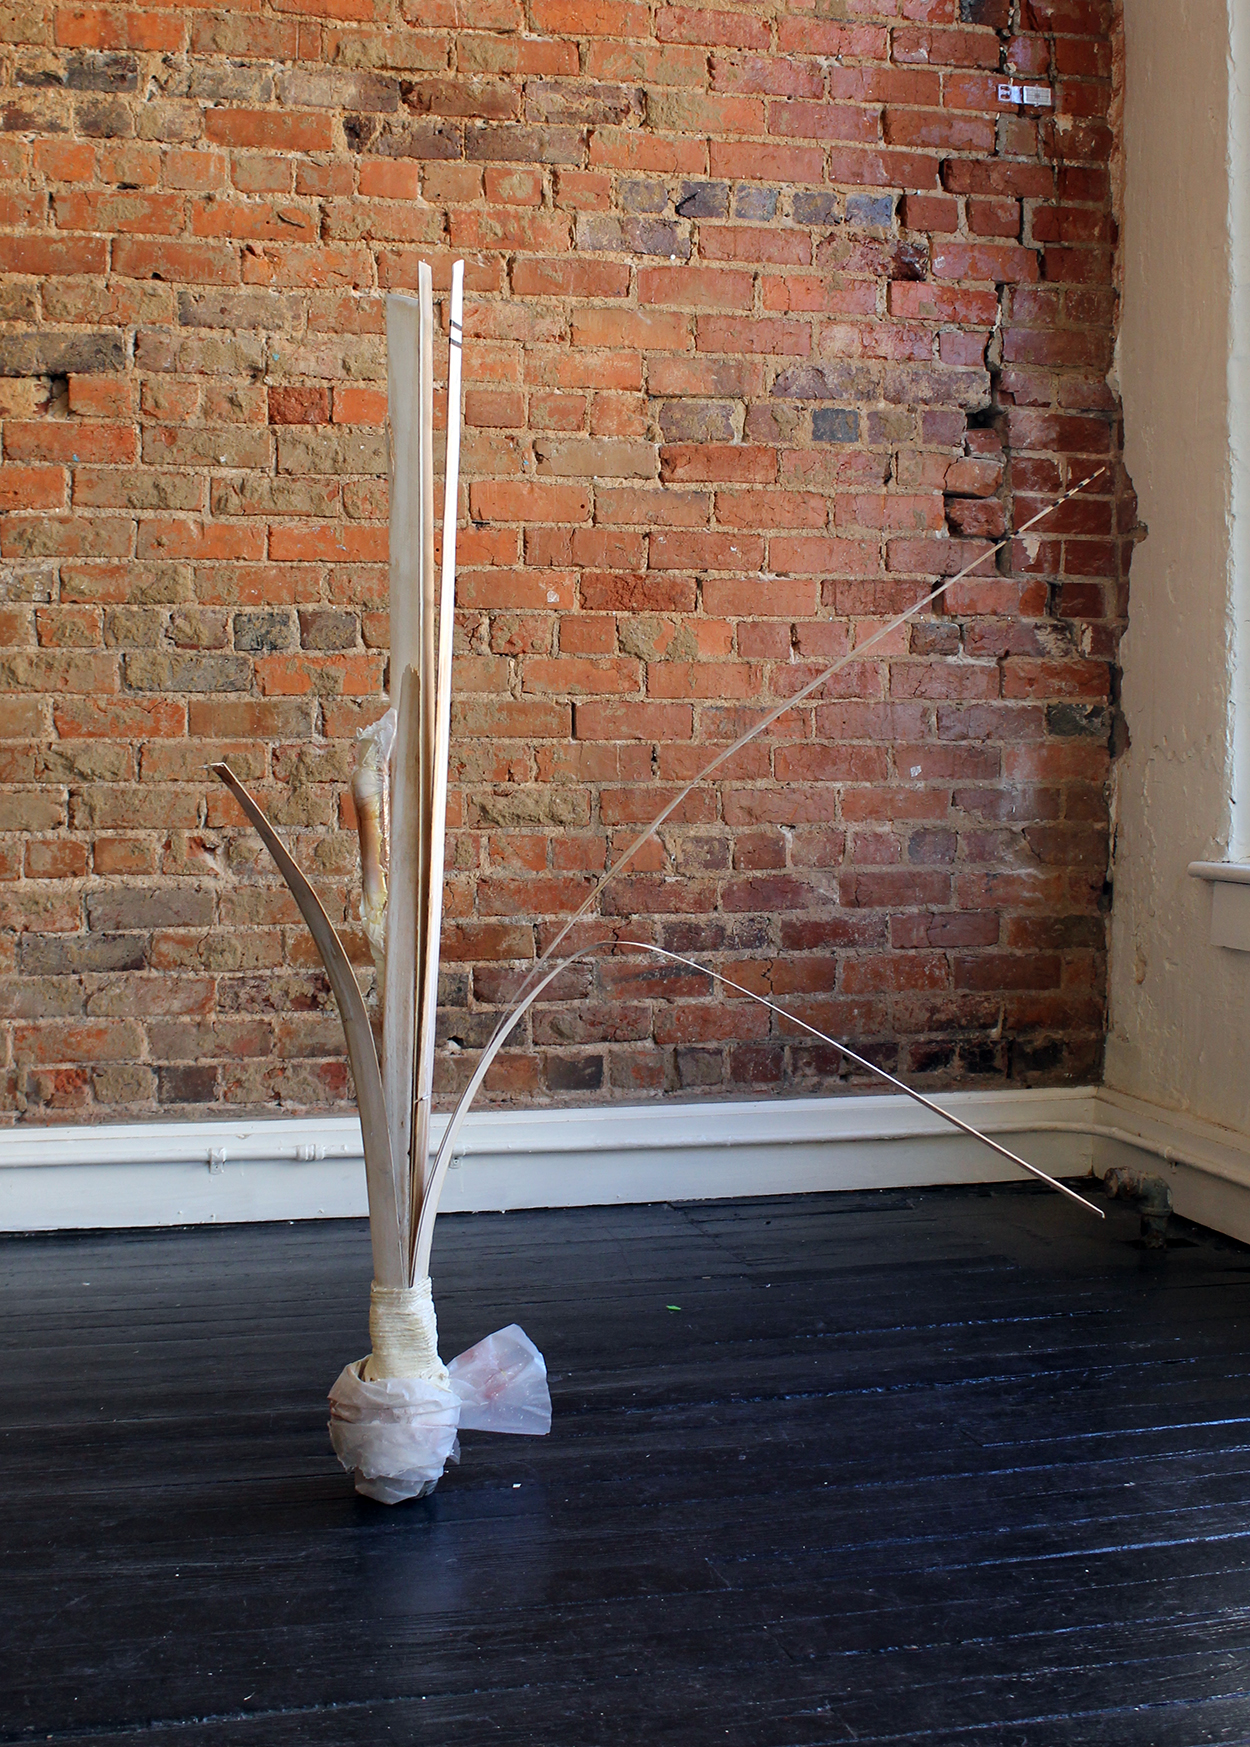 Mother In-Law Tongue Plant , Harriet Hoover, 2015, plastic water bottle, concrete, cotton, tape, and wood sculpture